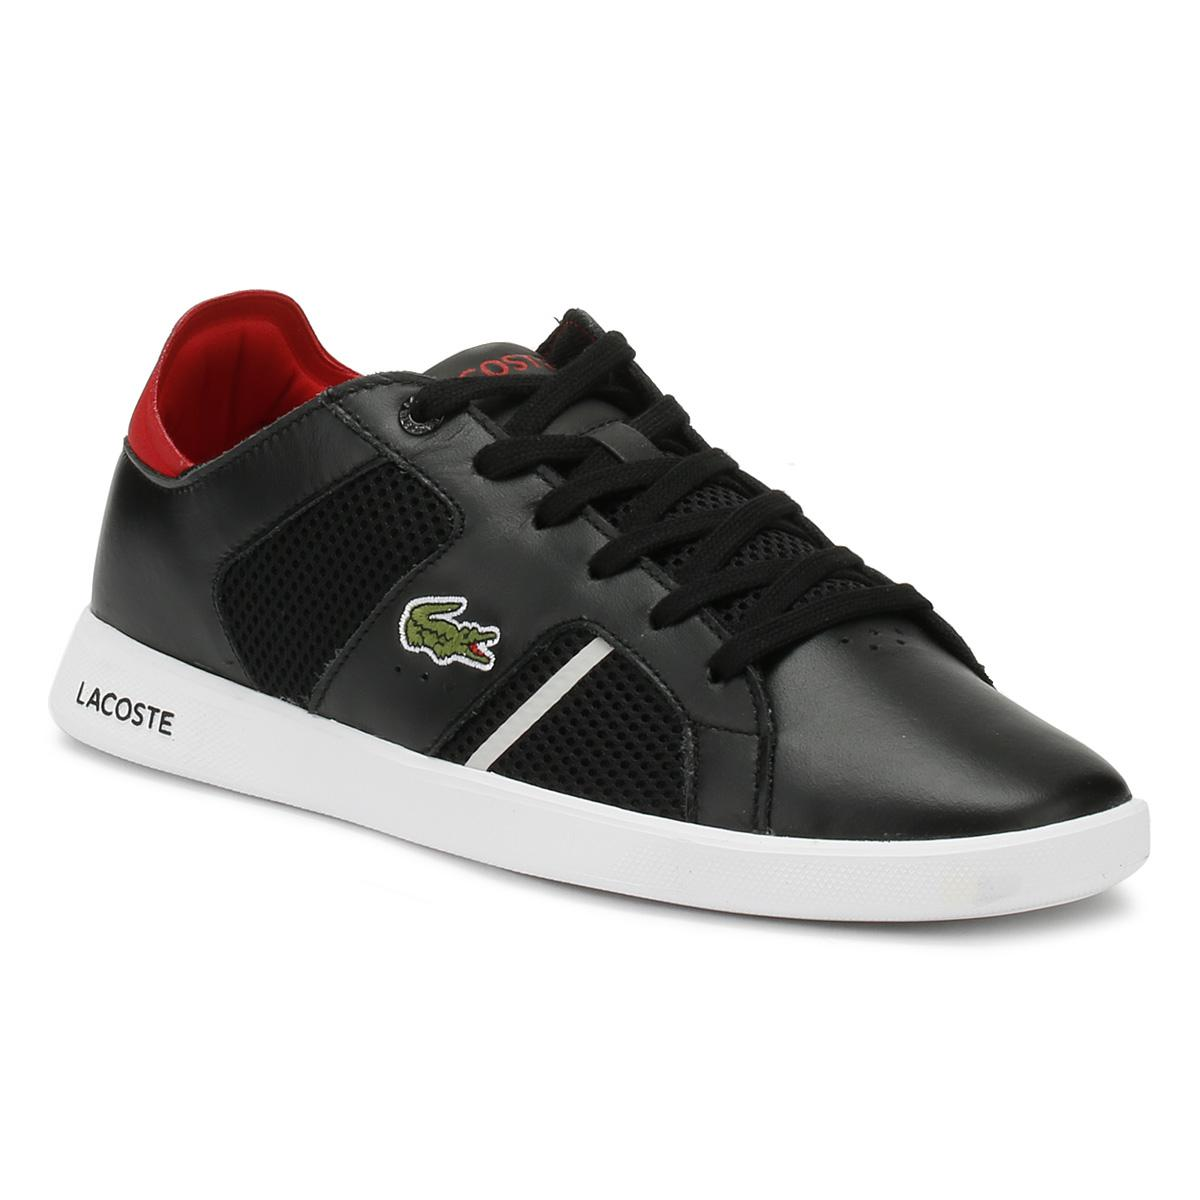 b5f41b8f8d43f Lacoste - Mens Black   Red Novas 218 1 Trainers Men s Shoes (trainers) In.  View fullscreen